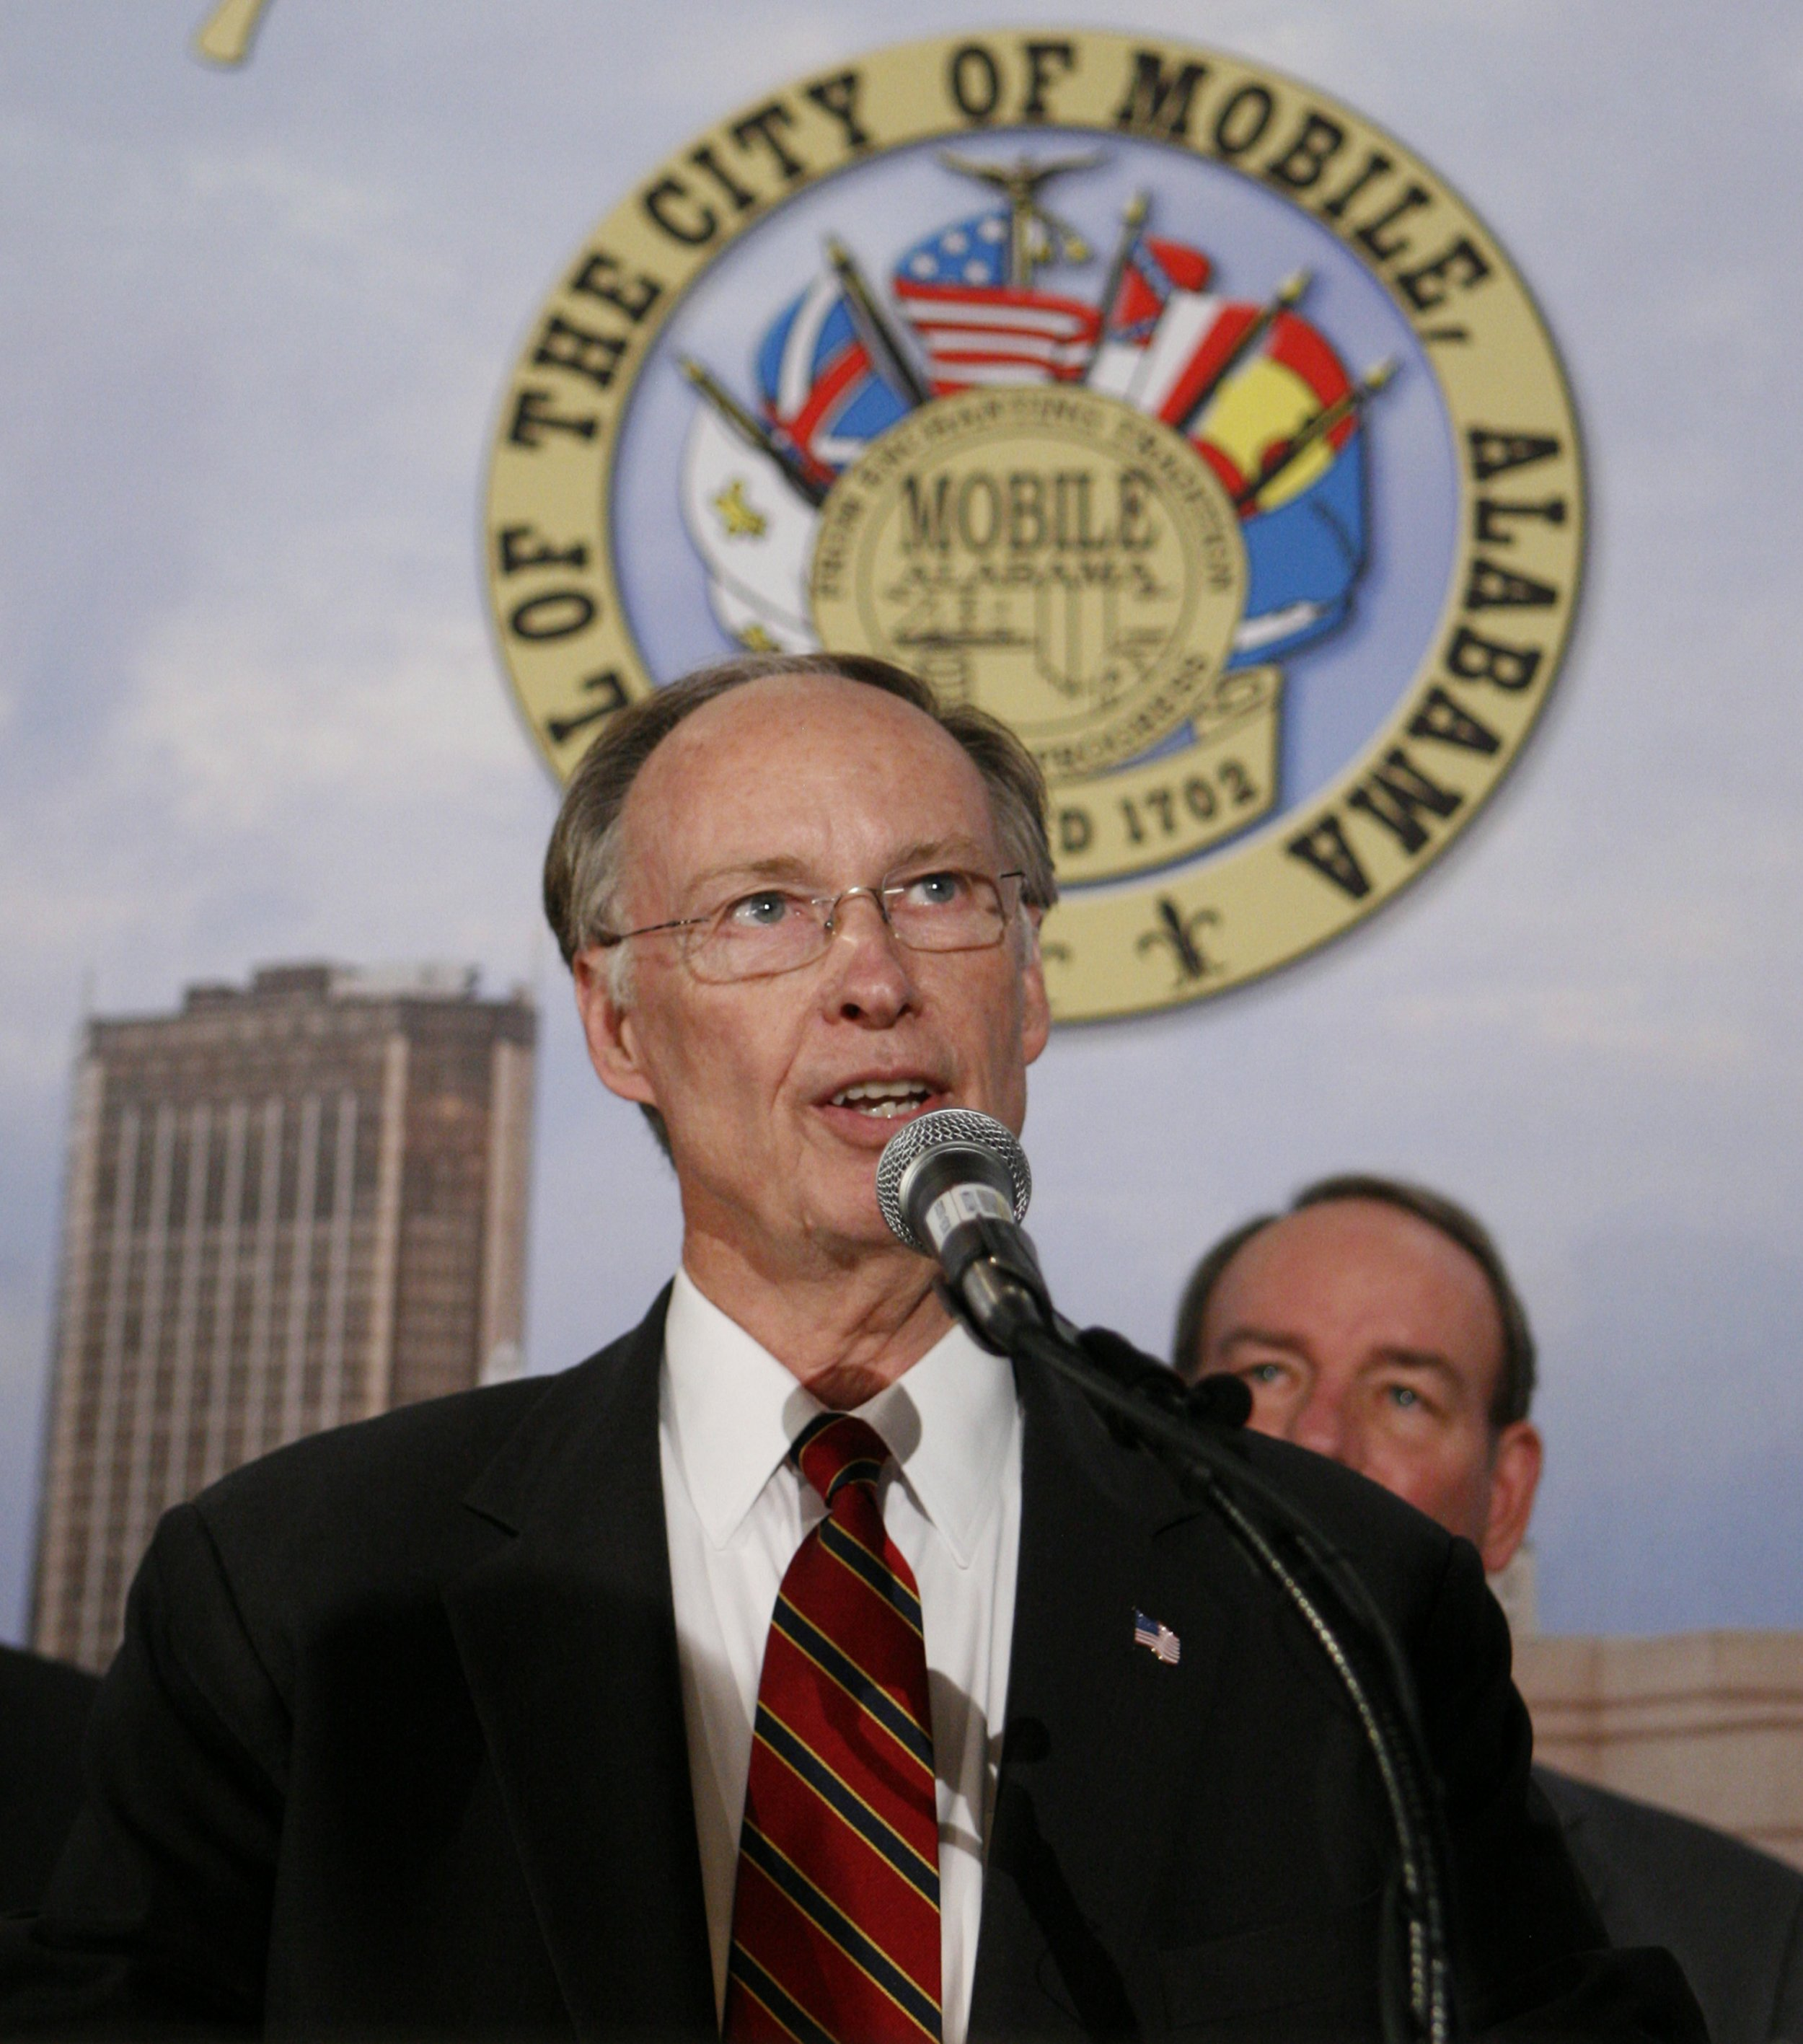 03_24_Robert_Bentley_Alabama_Governor_Sex_Scandal